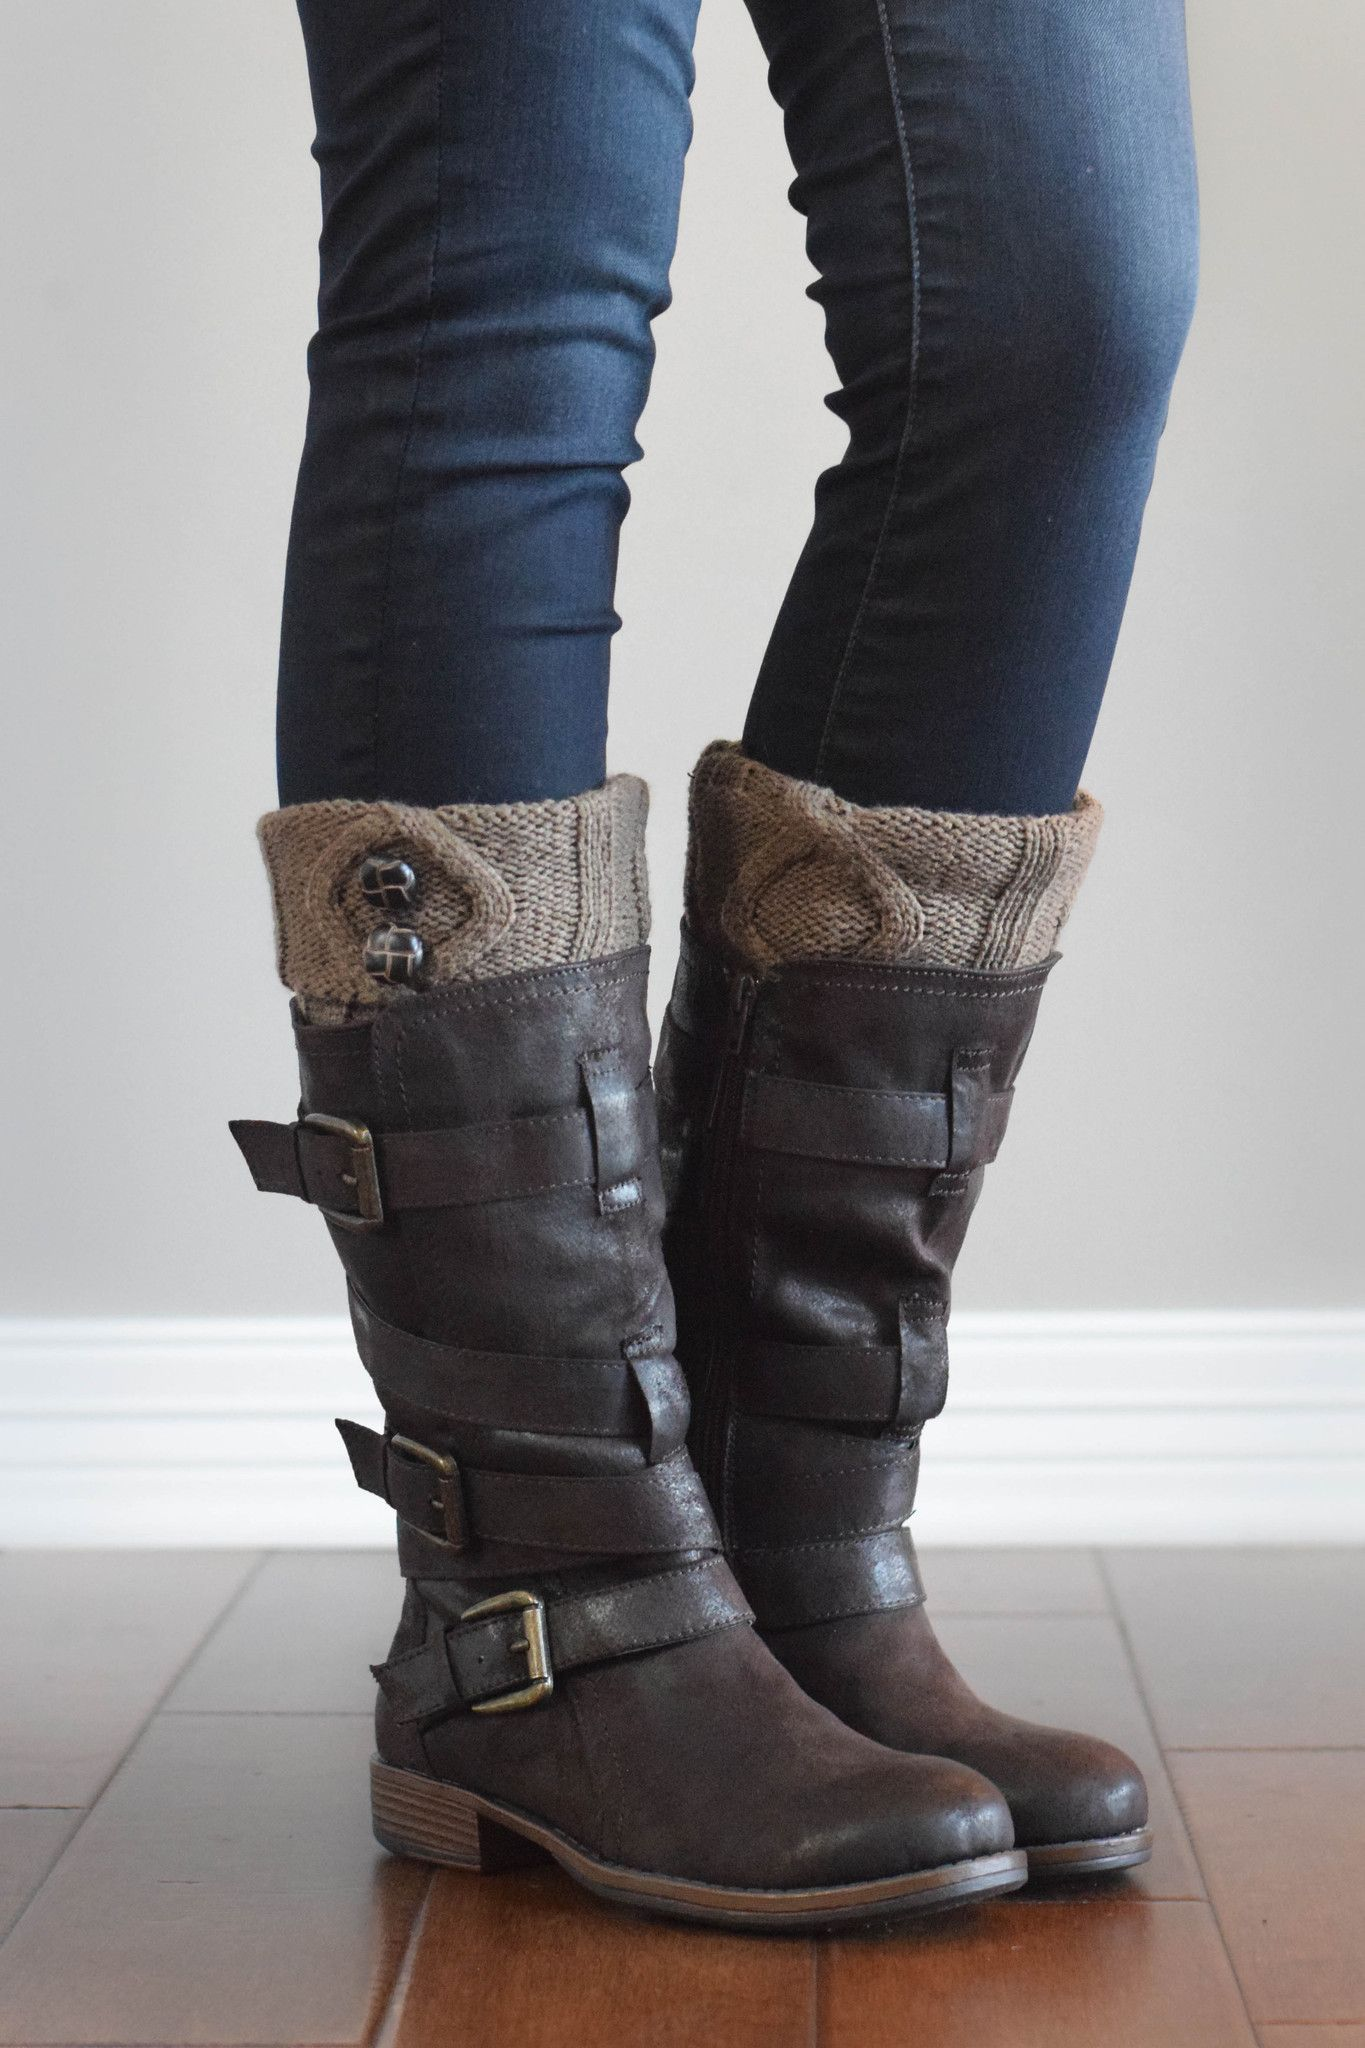 82b4f5762a4bb Mocha Two Button Boot Cuffs | My quirky style | Zapatos, Zapatos ...